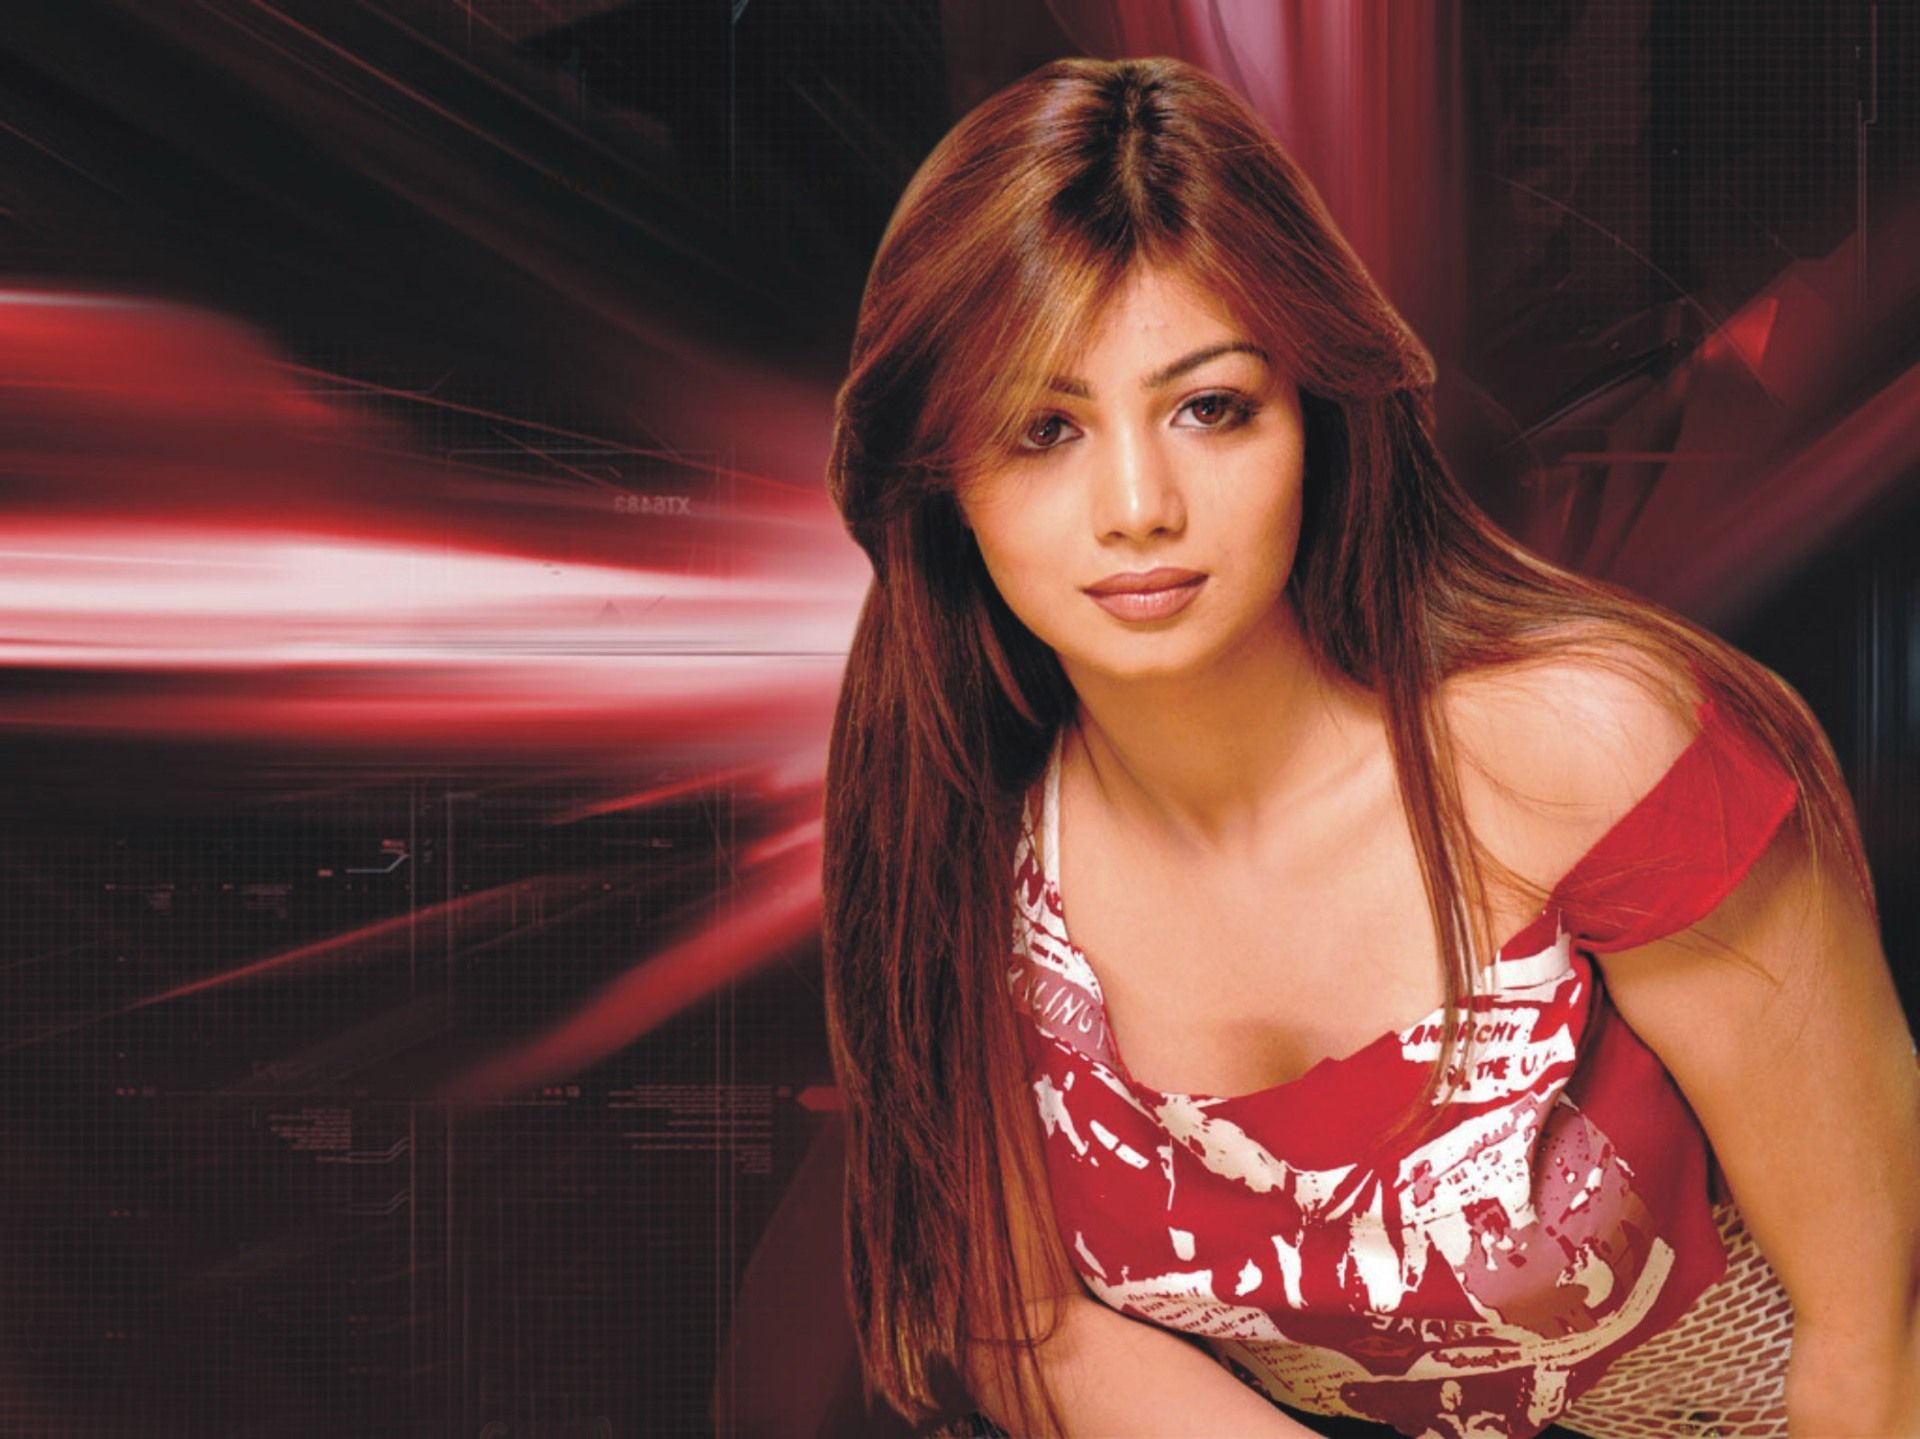 ayesha takia wallpapers high resolution and quality download